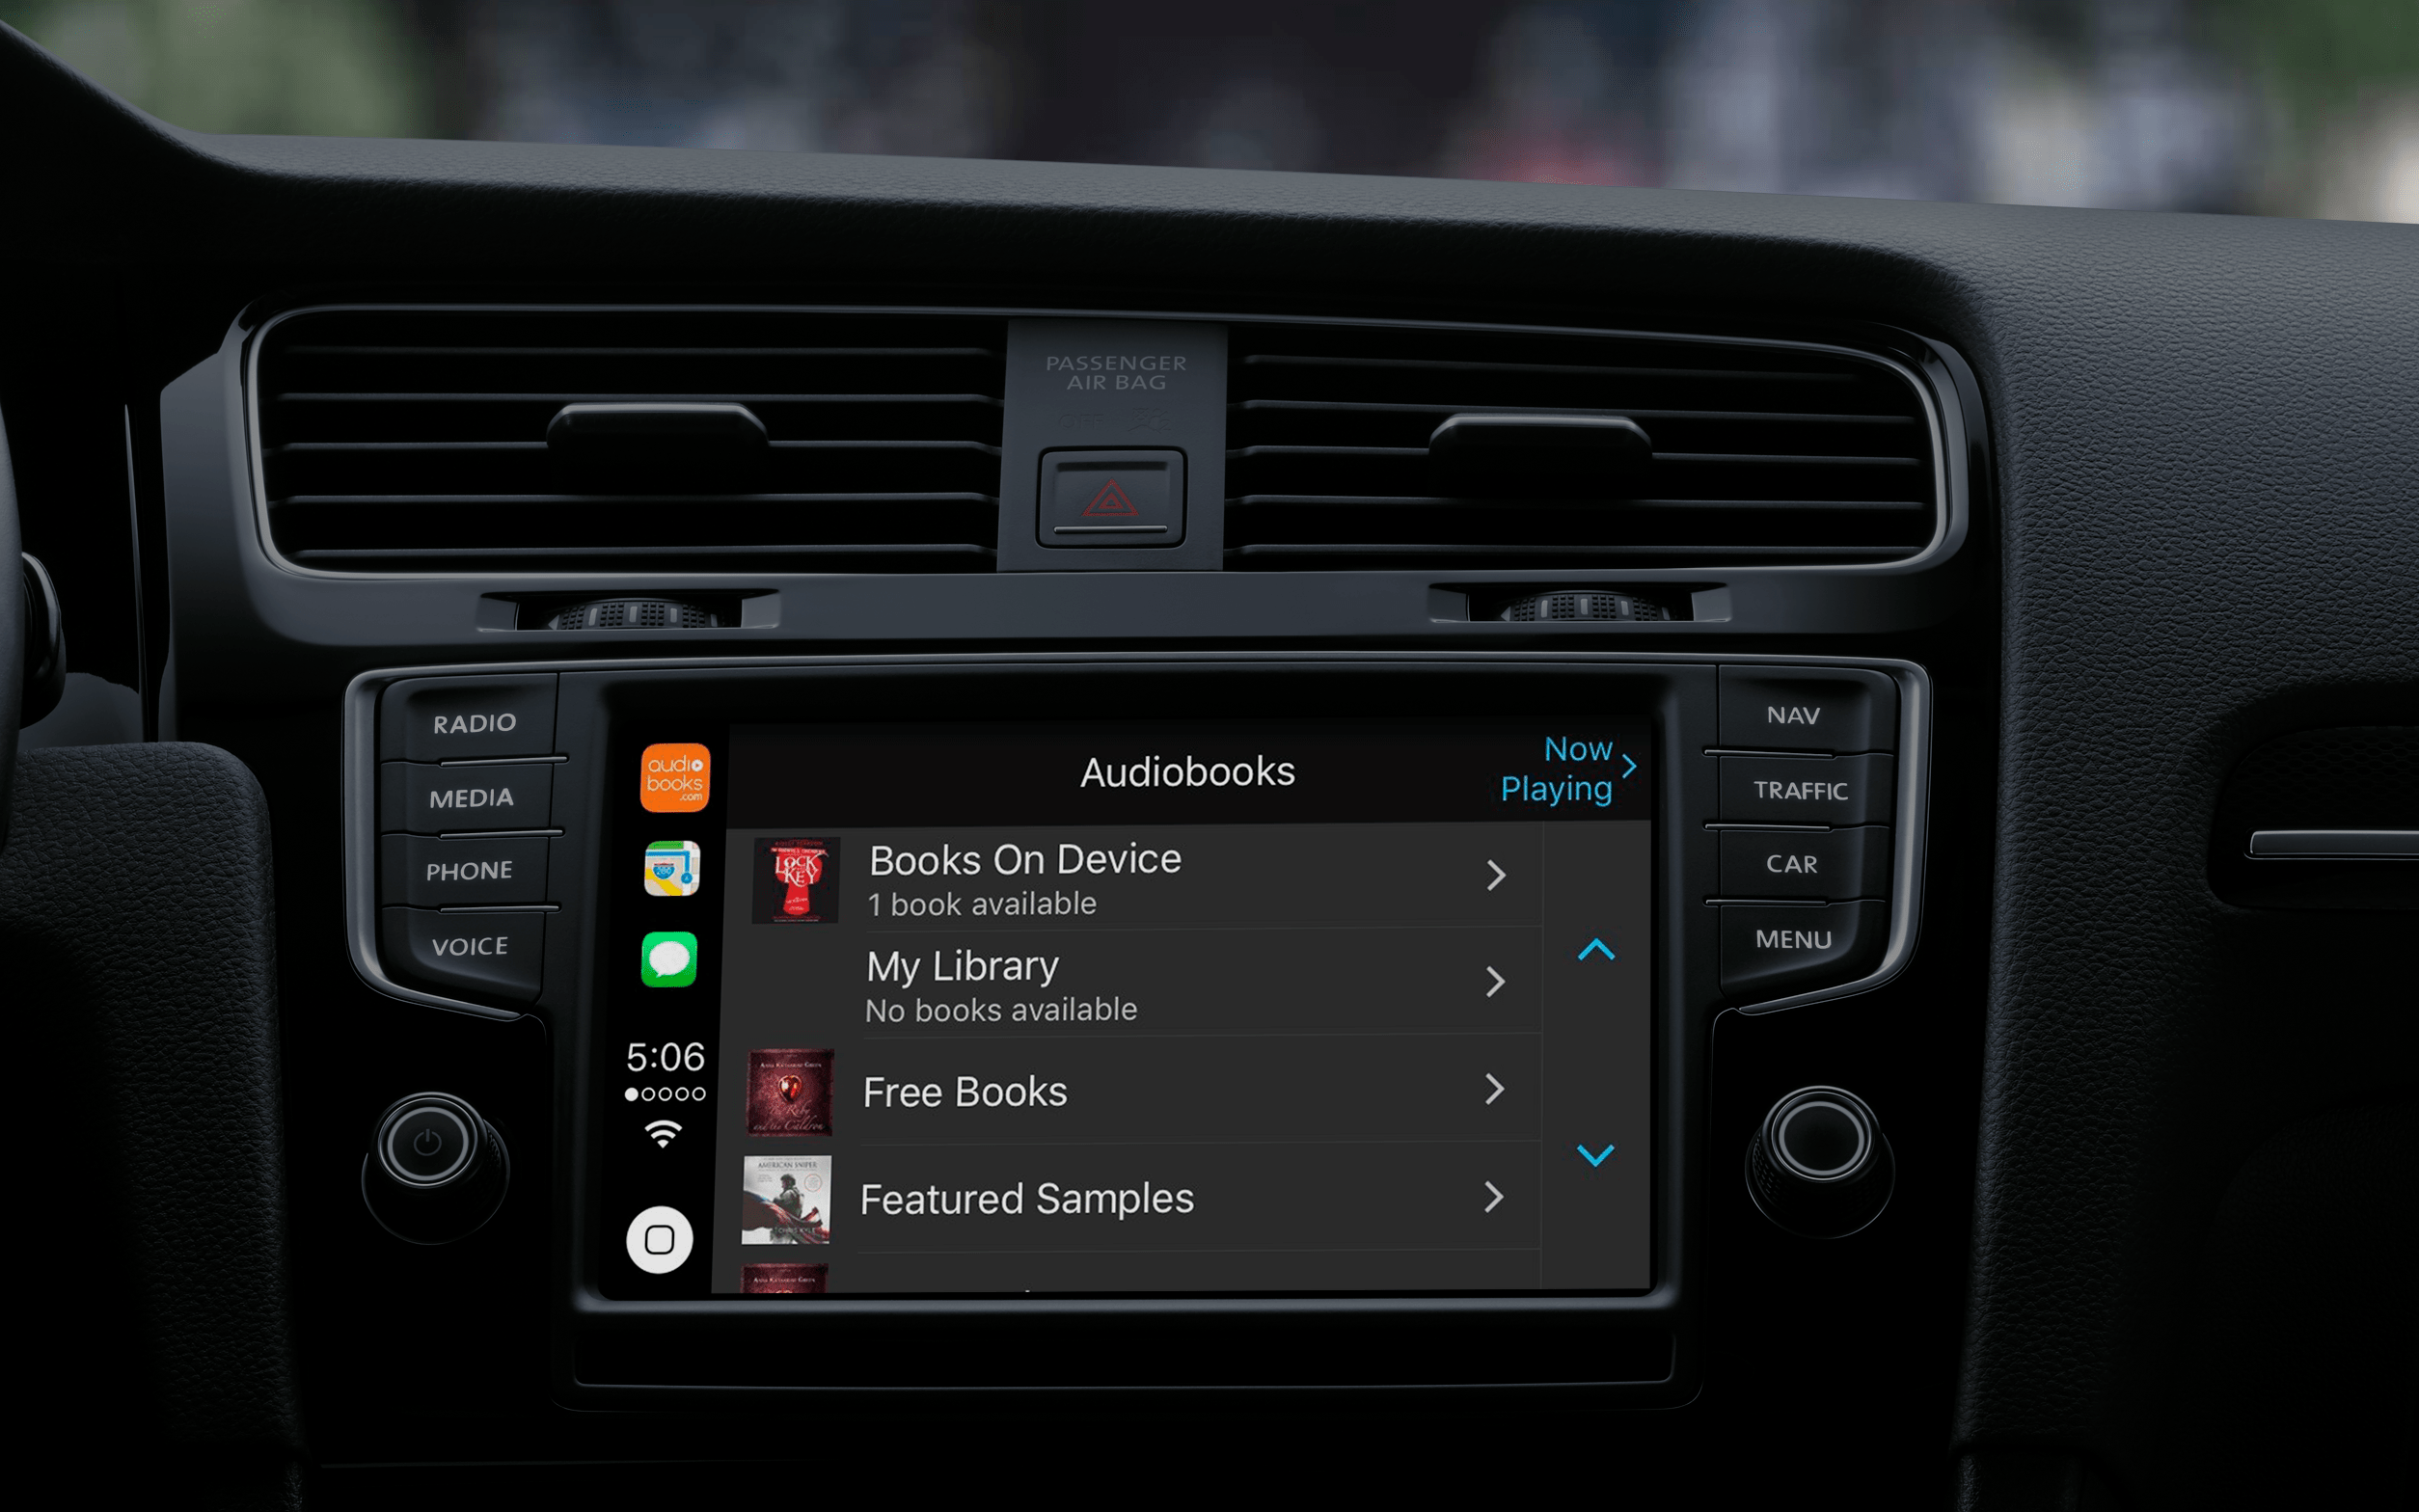 Apps supported by apple CarPlay: Audiobooks